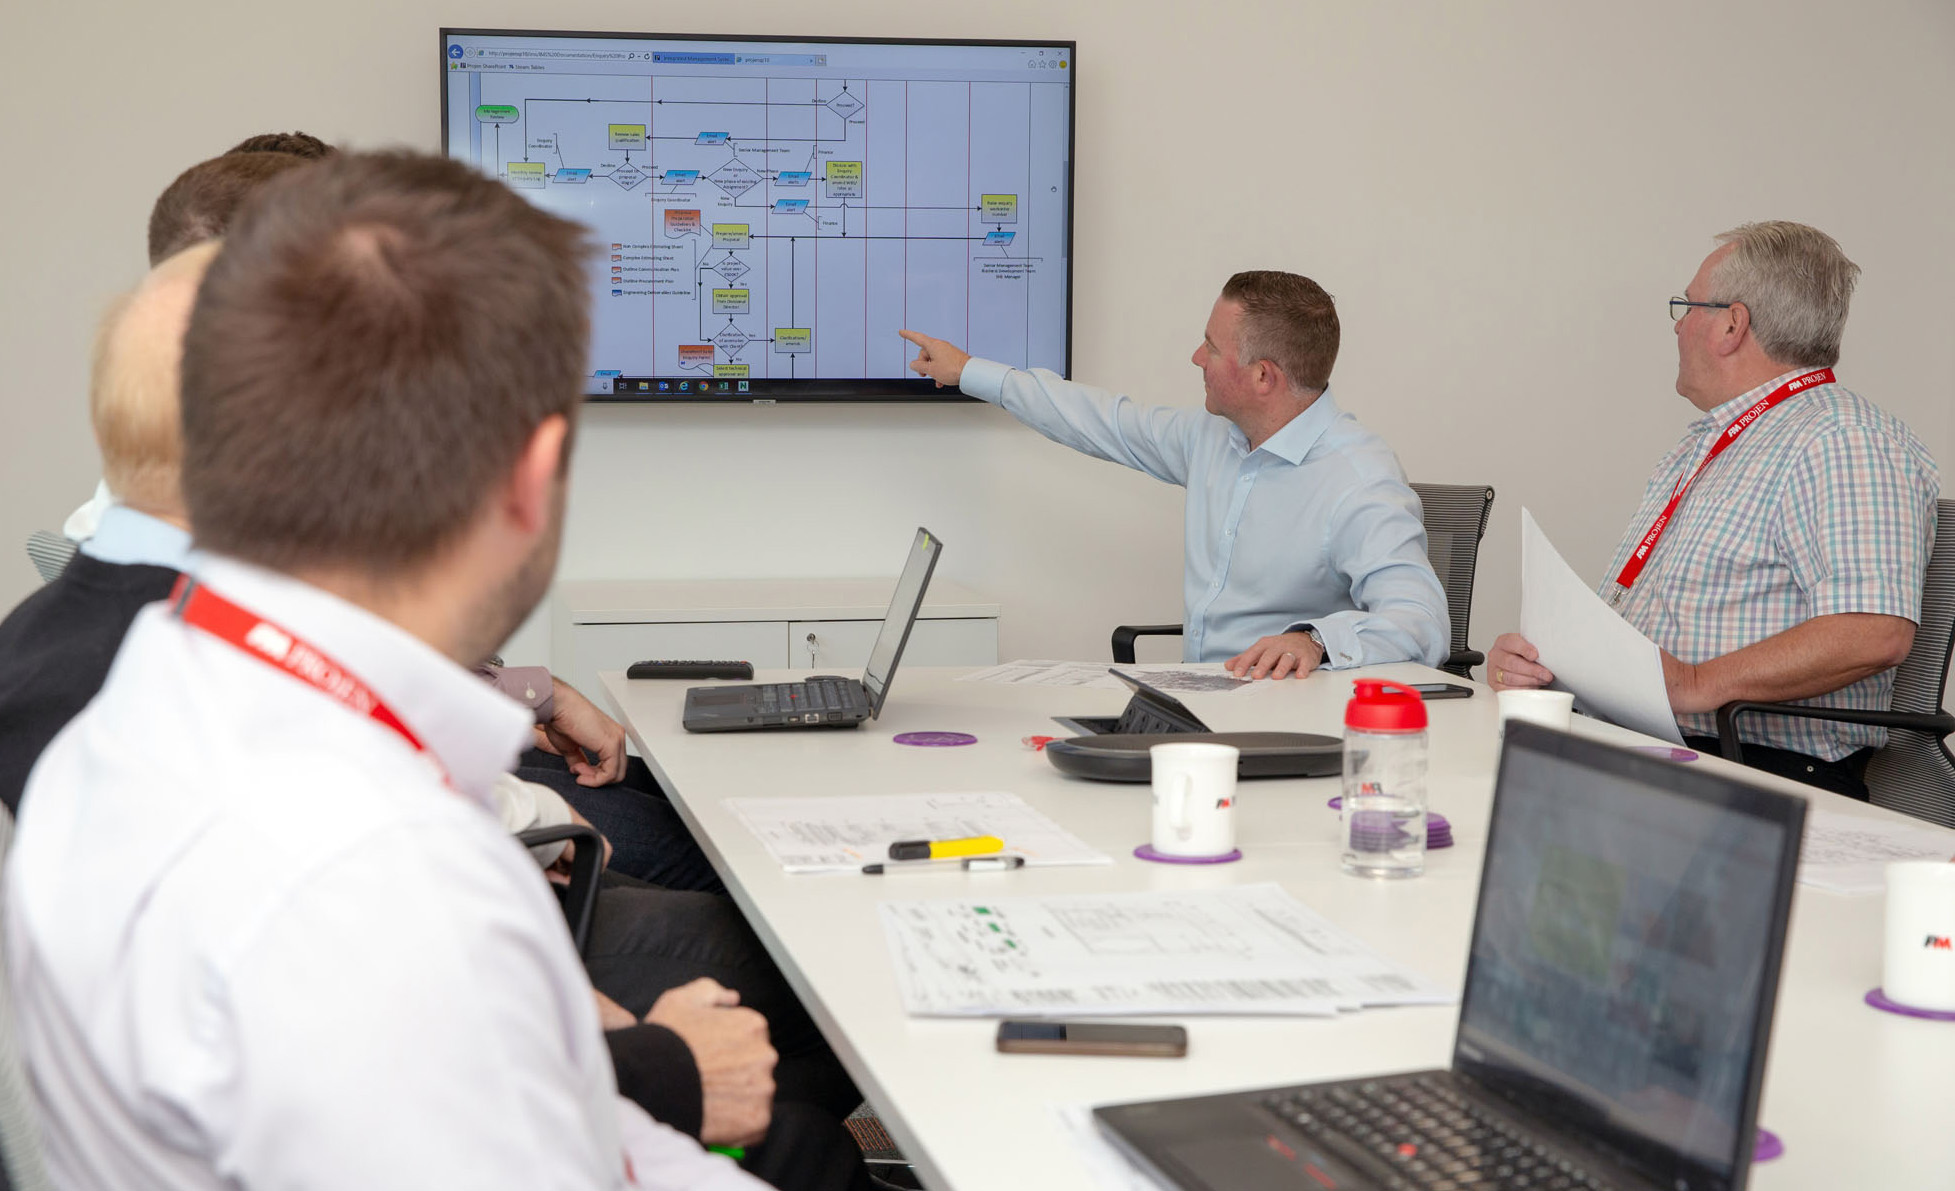 Project Management Training, Systems and Procedures